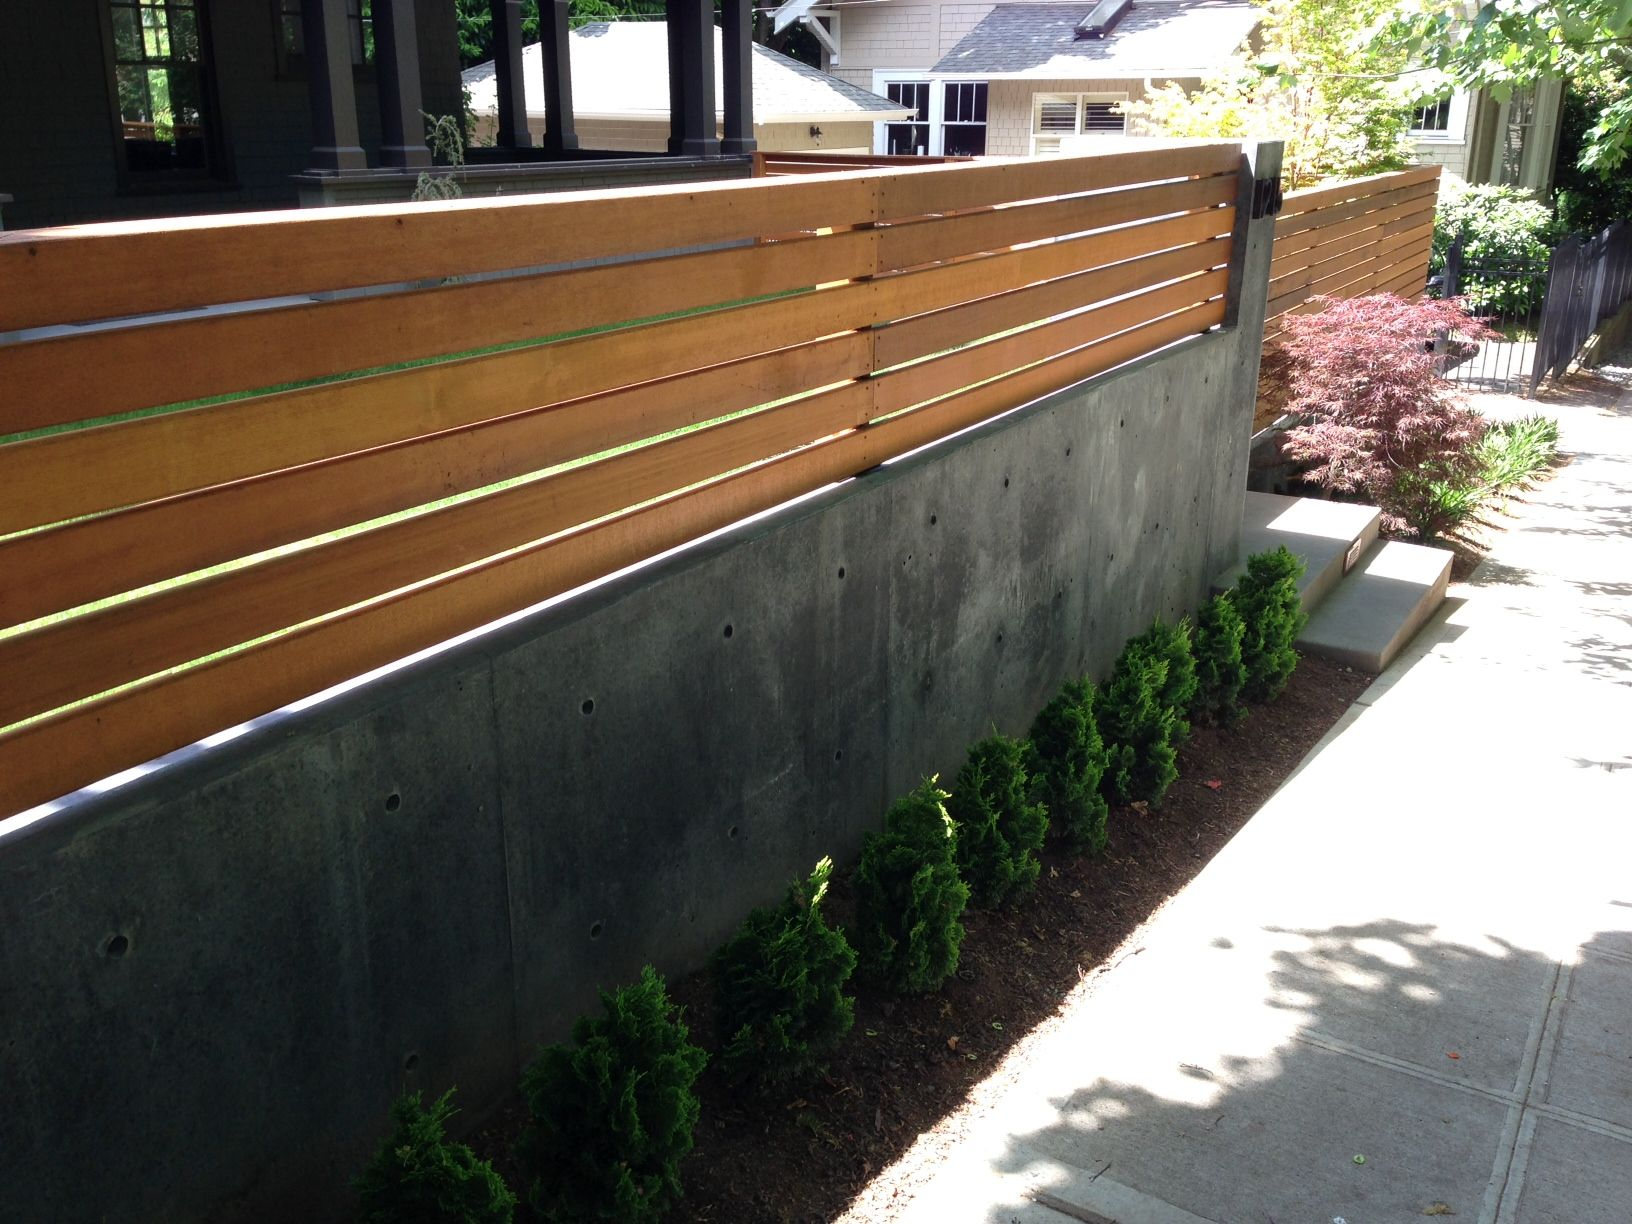 Wood Trellis On Top Of Concrete Retaining Wall Backyard Fences Concrete Retaining Walls Fence Design